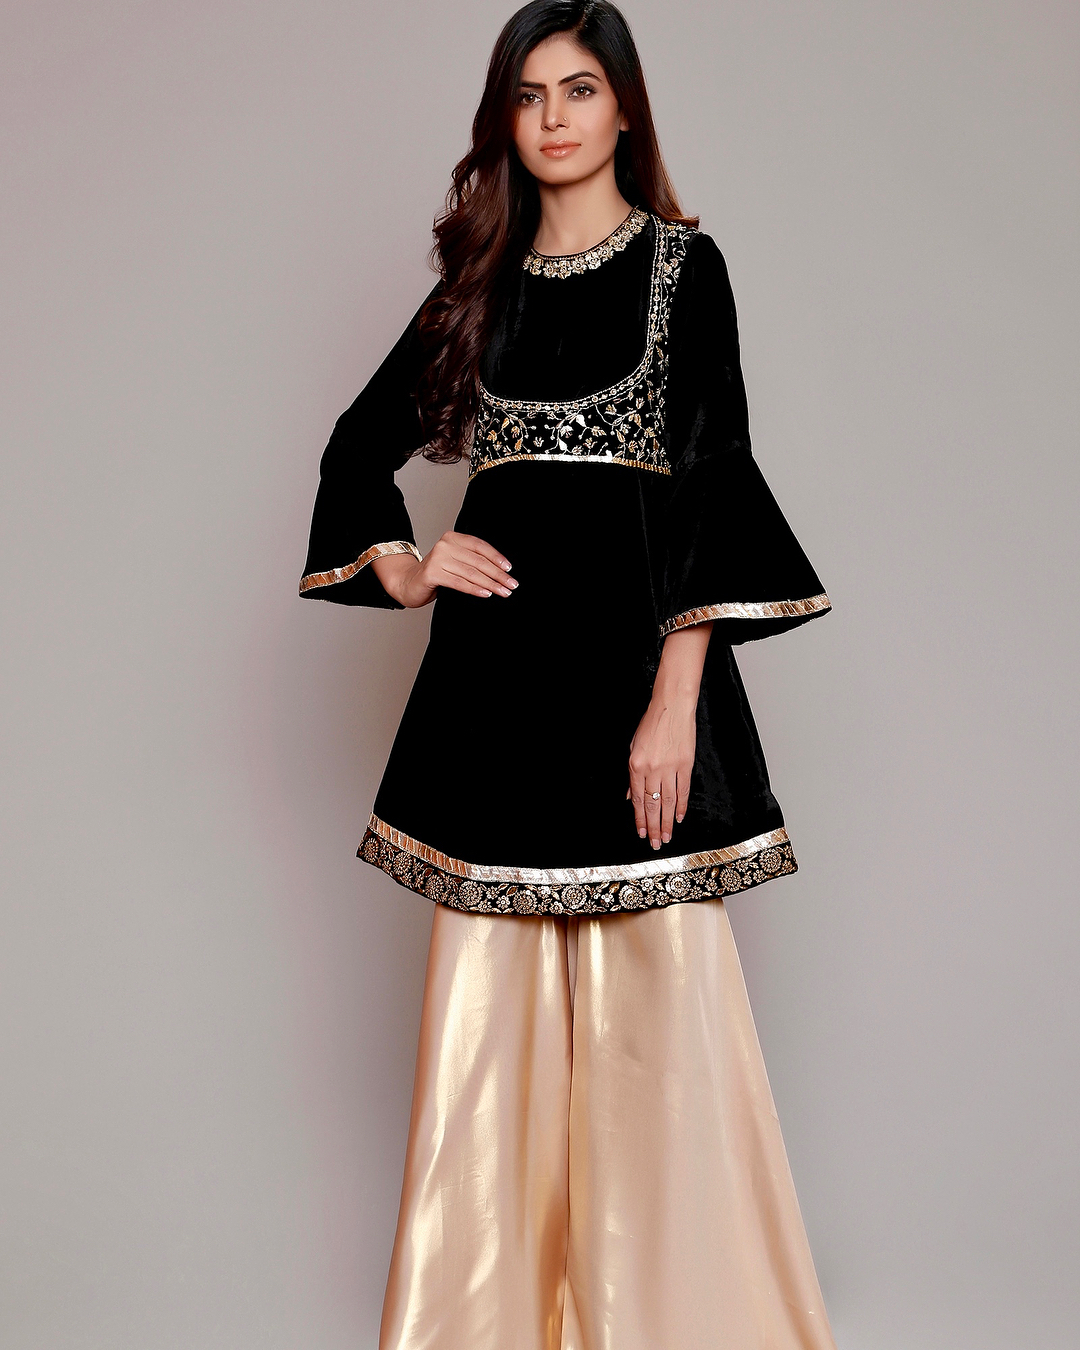 Dress Designs: Winter Velvet Dresses Designs Latest Trends Collection